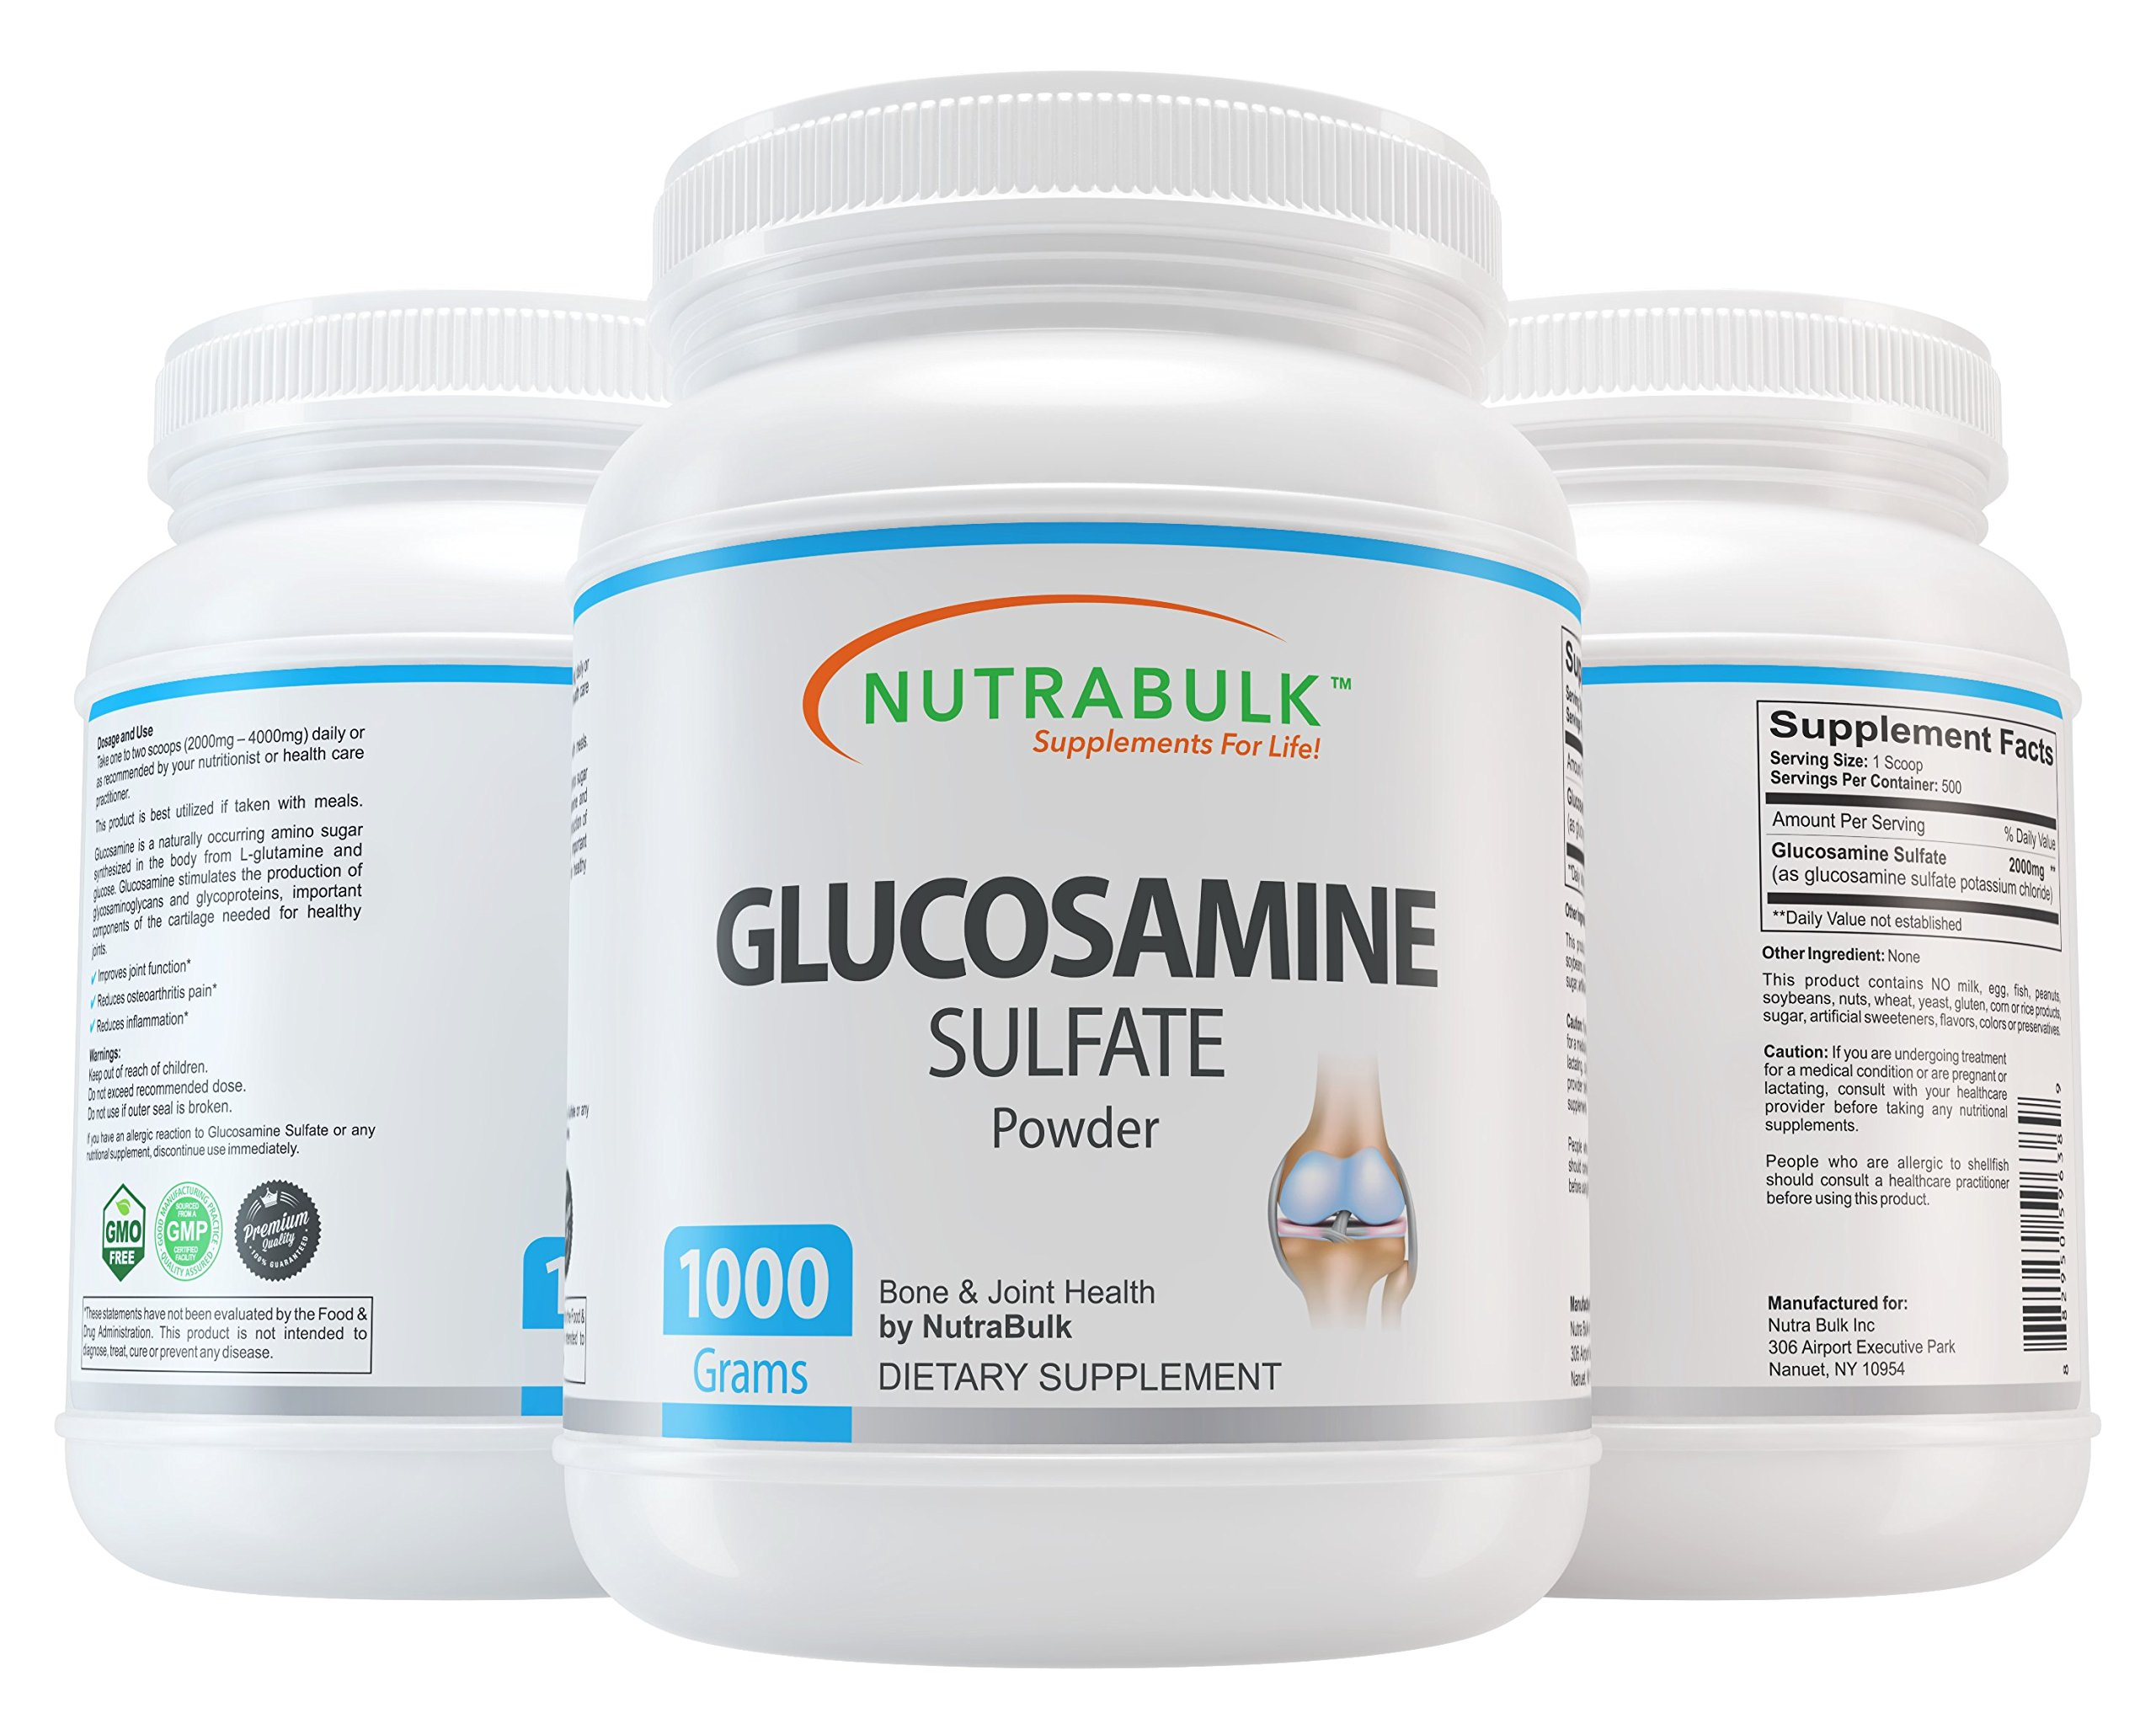 NutraBulk Glucosamine Sulfate Powder - Best Joint Pain Relief Support Supplement for Arthritis, Back, Knee, Hips & Inflammation. 1 Kilogram (2.2lbs) by NutraBulk